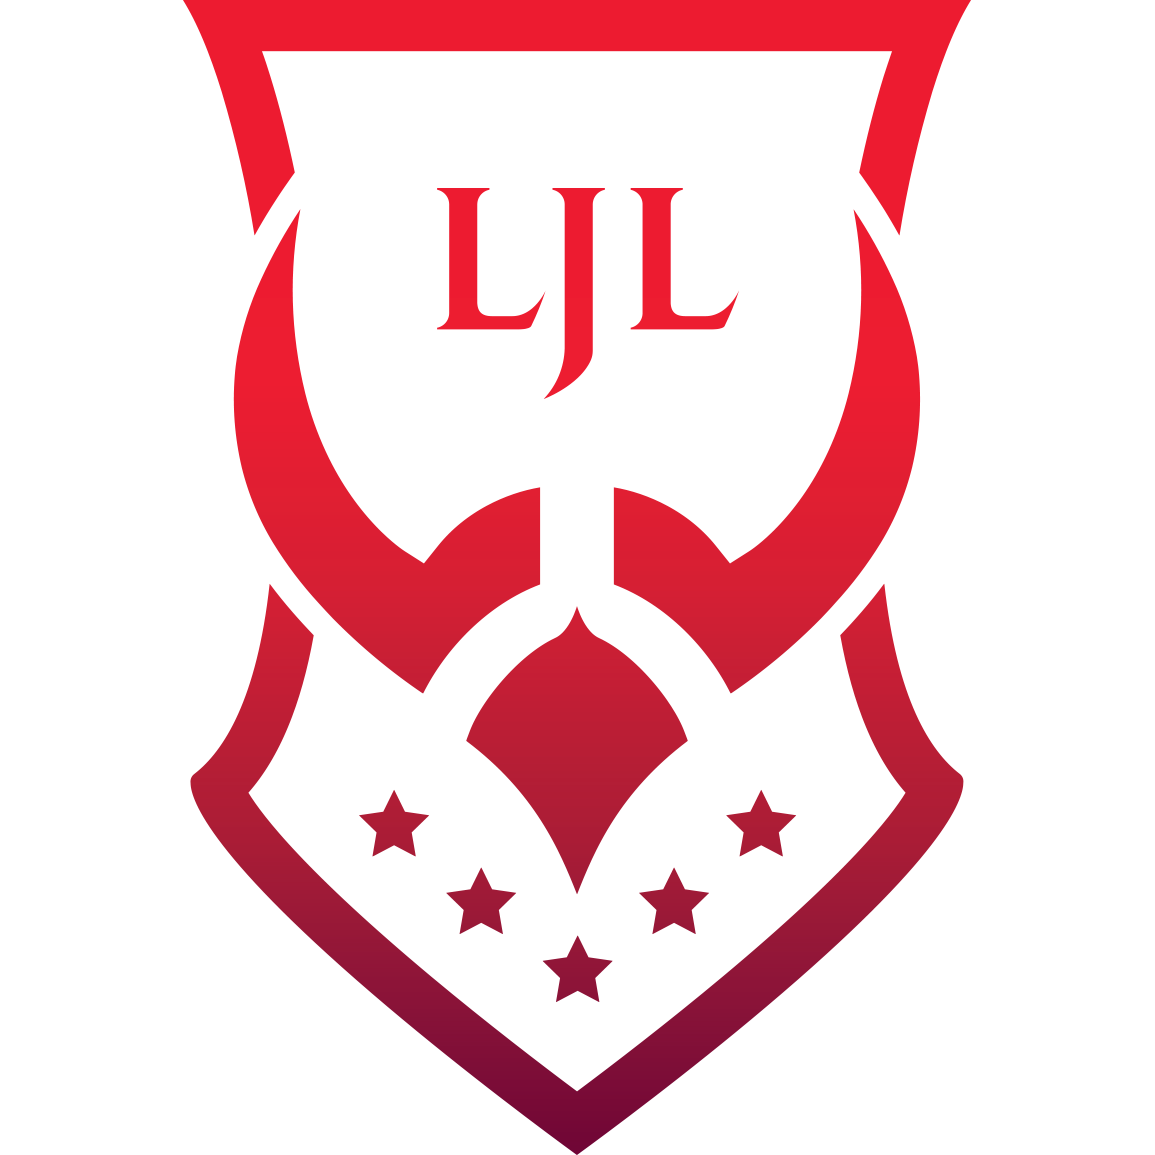 Ljl 2021 Spring Leaguepedia League Of Legends Esports Wiki